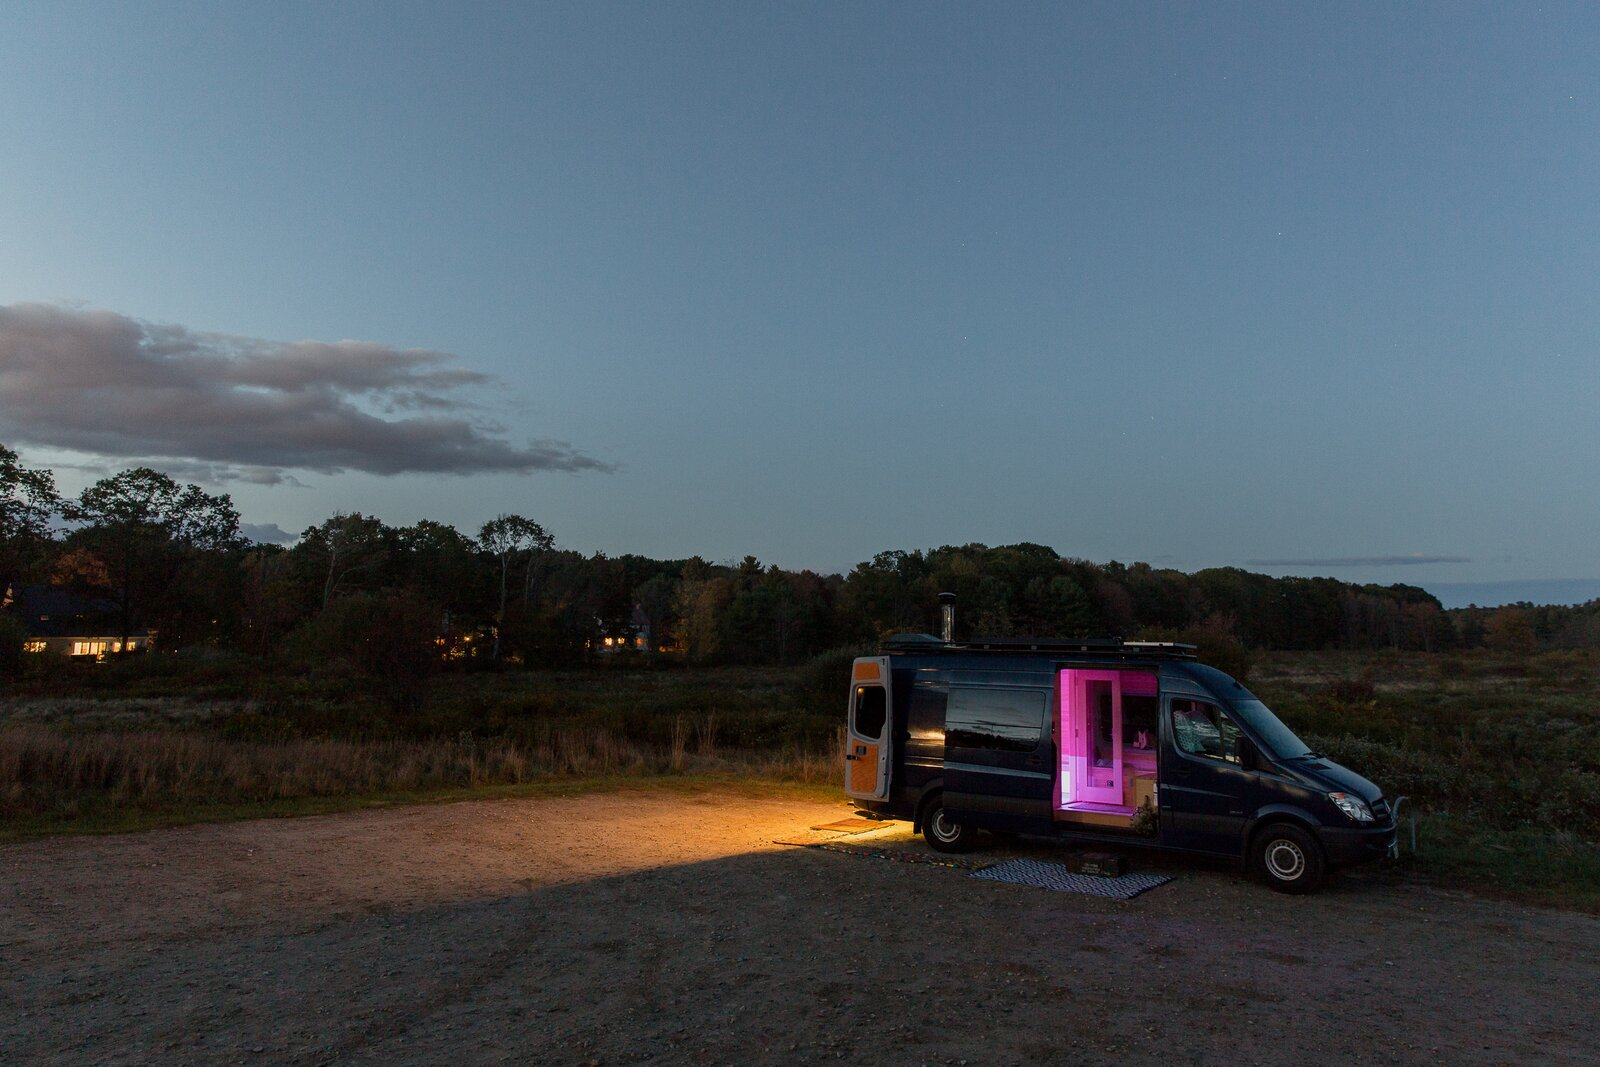 The sauna van is powered by a 115-watt PV solar panel mounted on the roof, along with Victron Energy AGM batteries. And the sauna heater is Karhu.  Photo 11 of 11 in Missing the Spa? This Converted Mercedes Sprinter Can Bring the Sauna to Your Doorstep